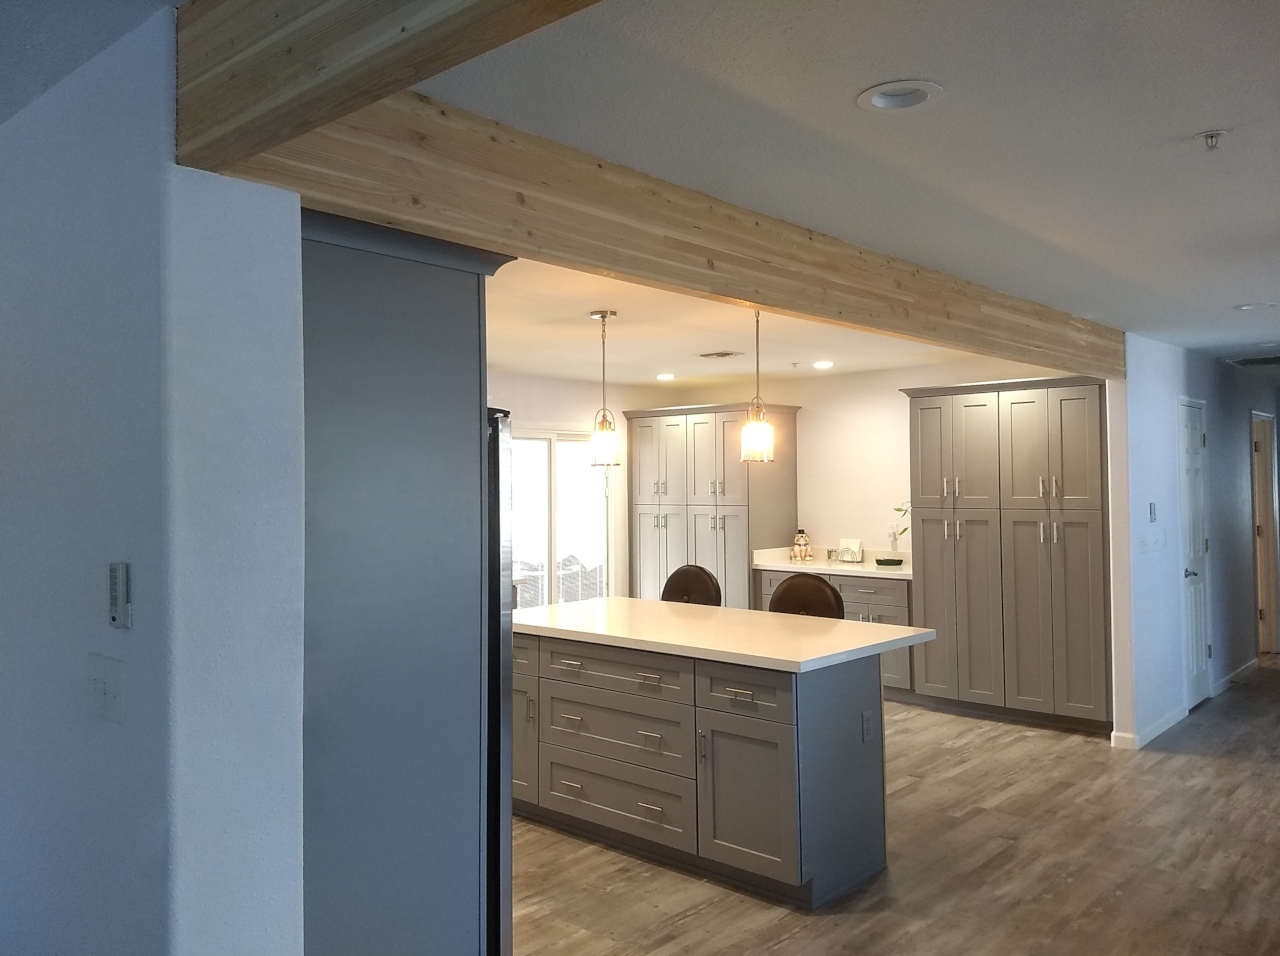 scottsdale kitchen remodel structural beams